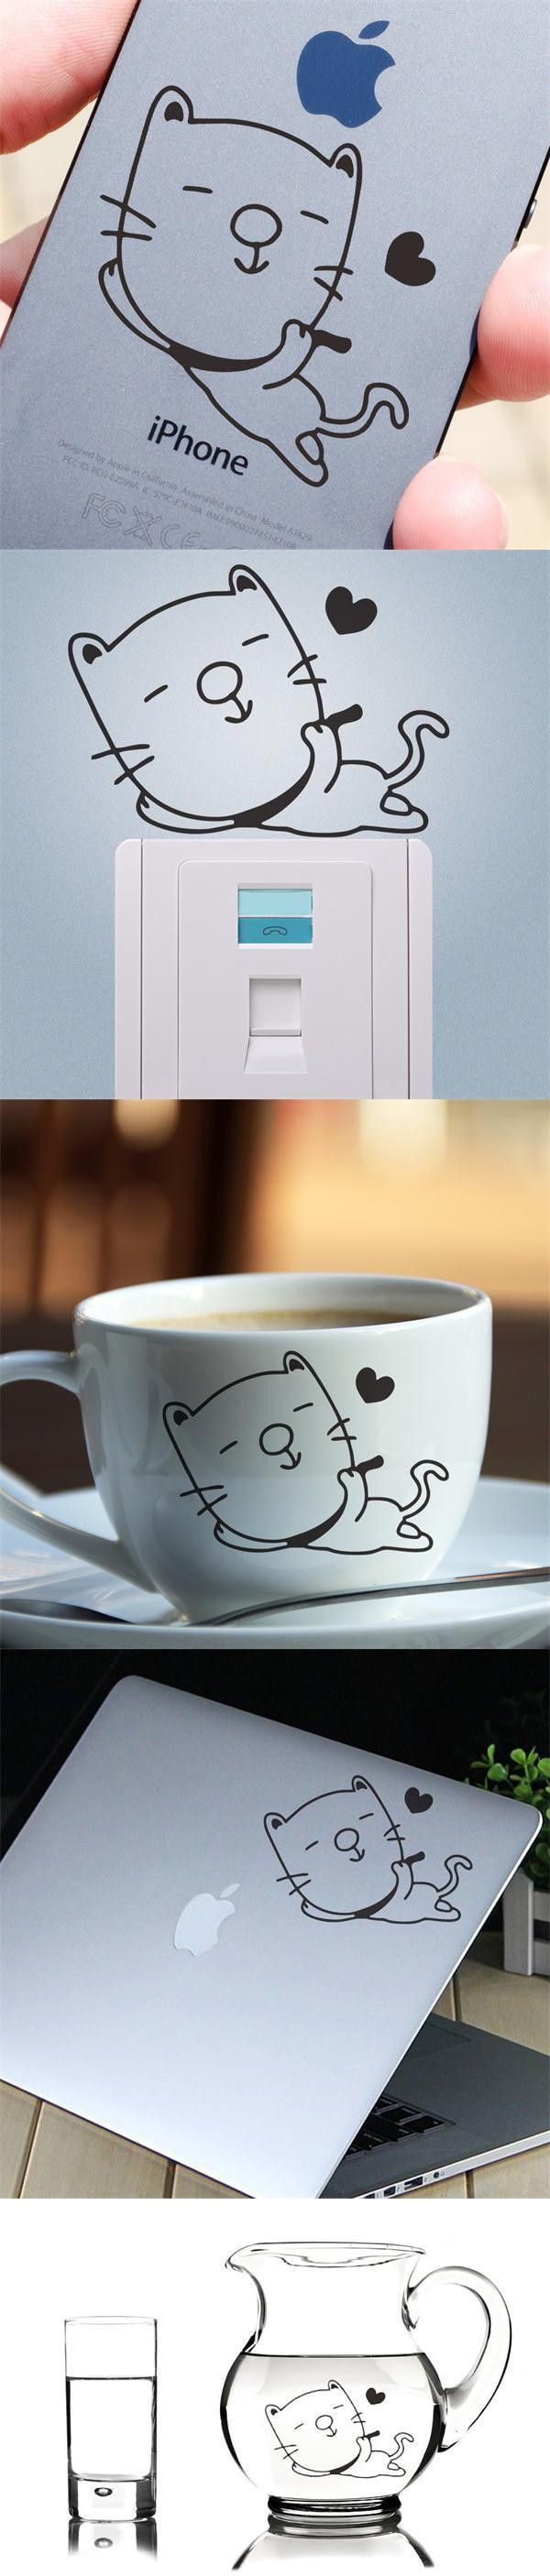 Black DIY small cute Cat home decoration wall stickers removable adesivo de parede cup phone switch computer decal $1